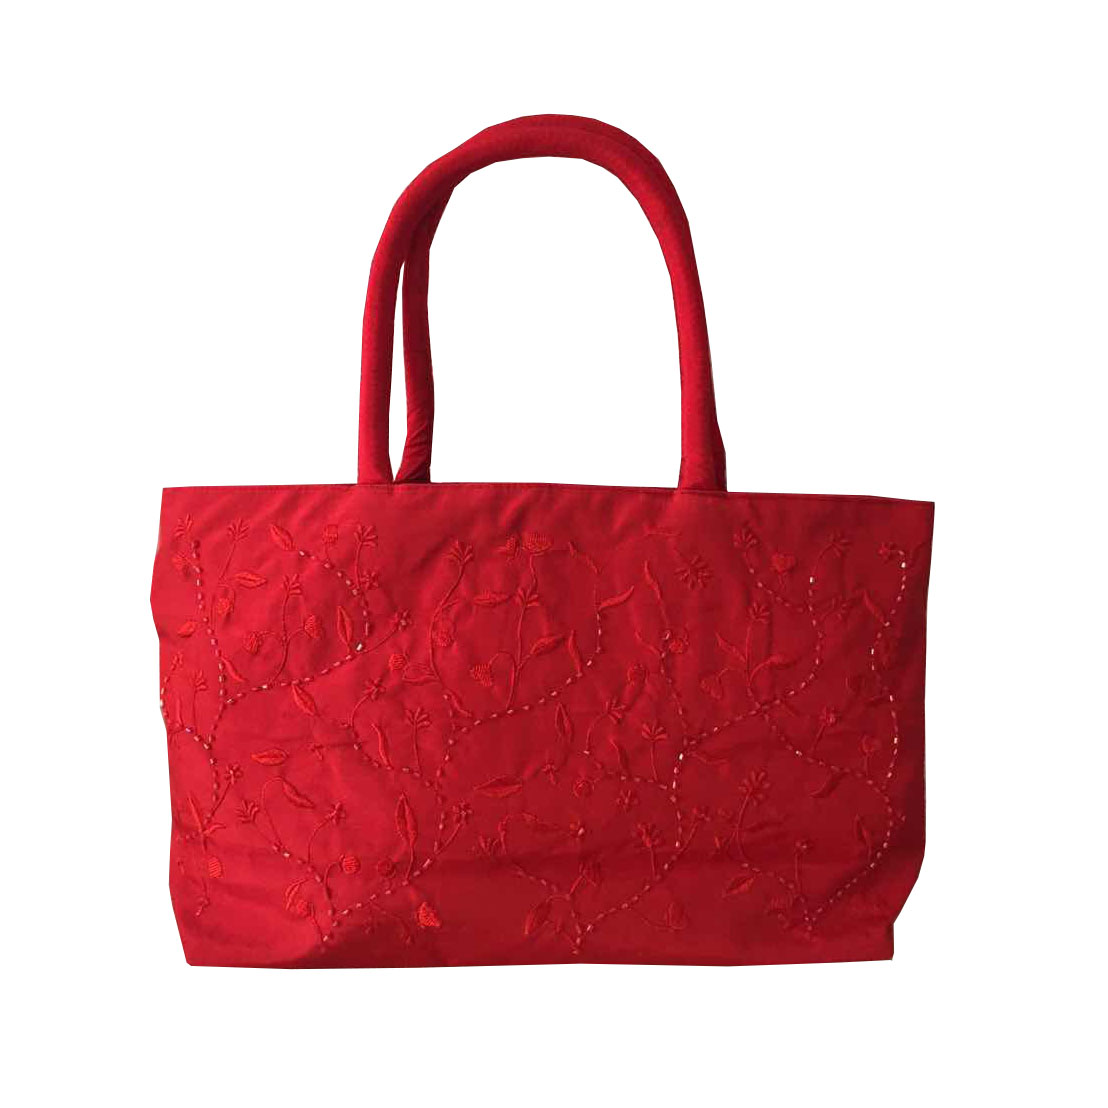 Crimson red Vietnam silk handbag